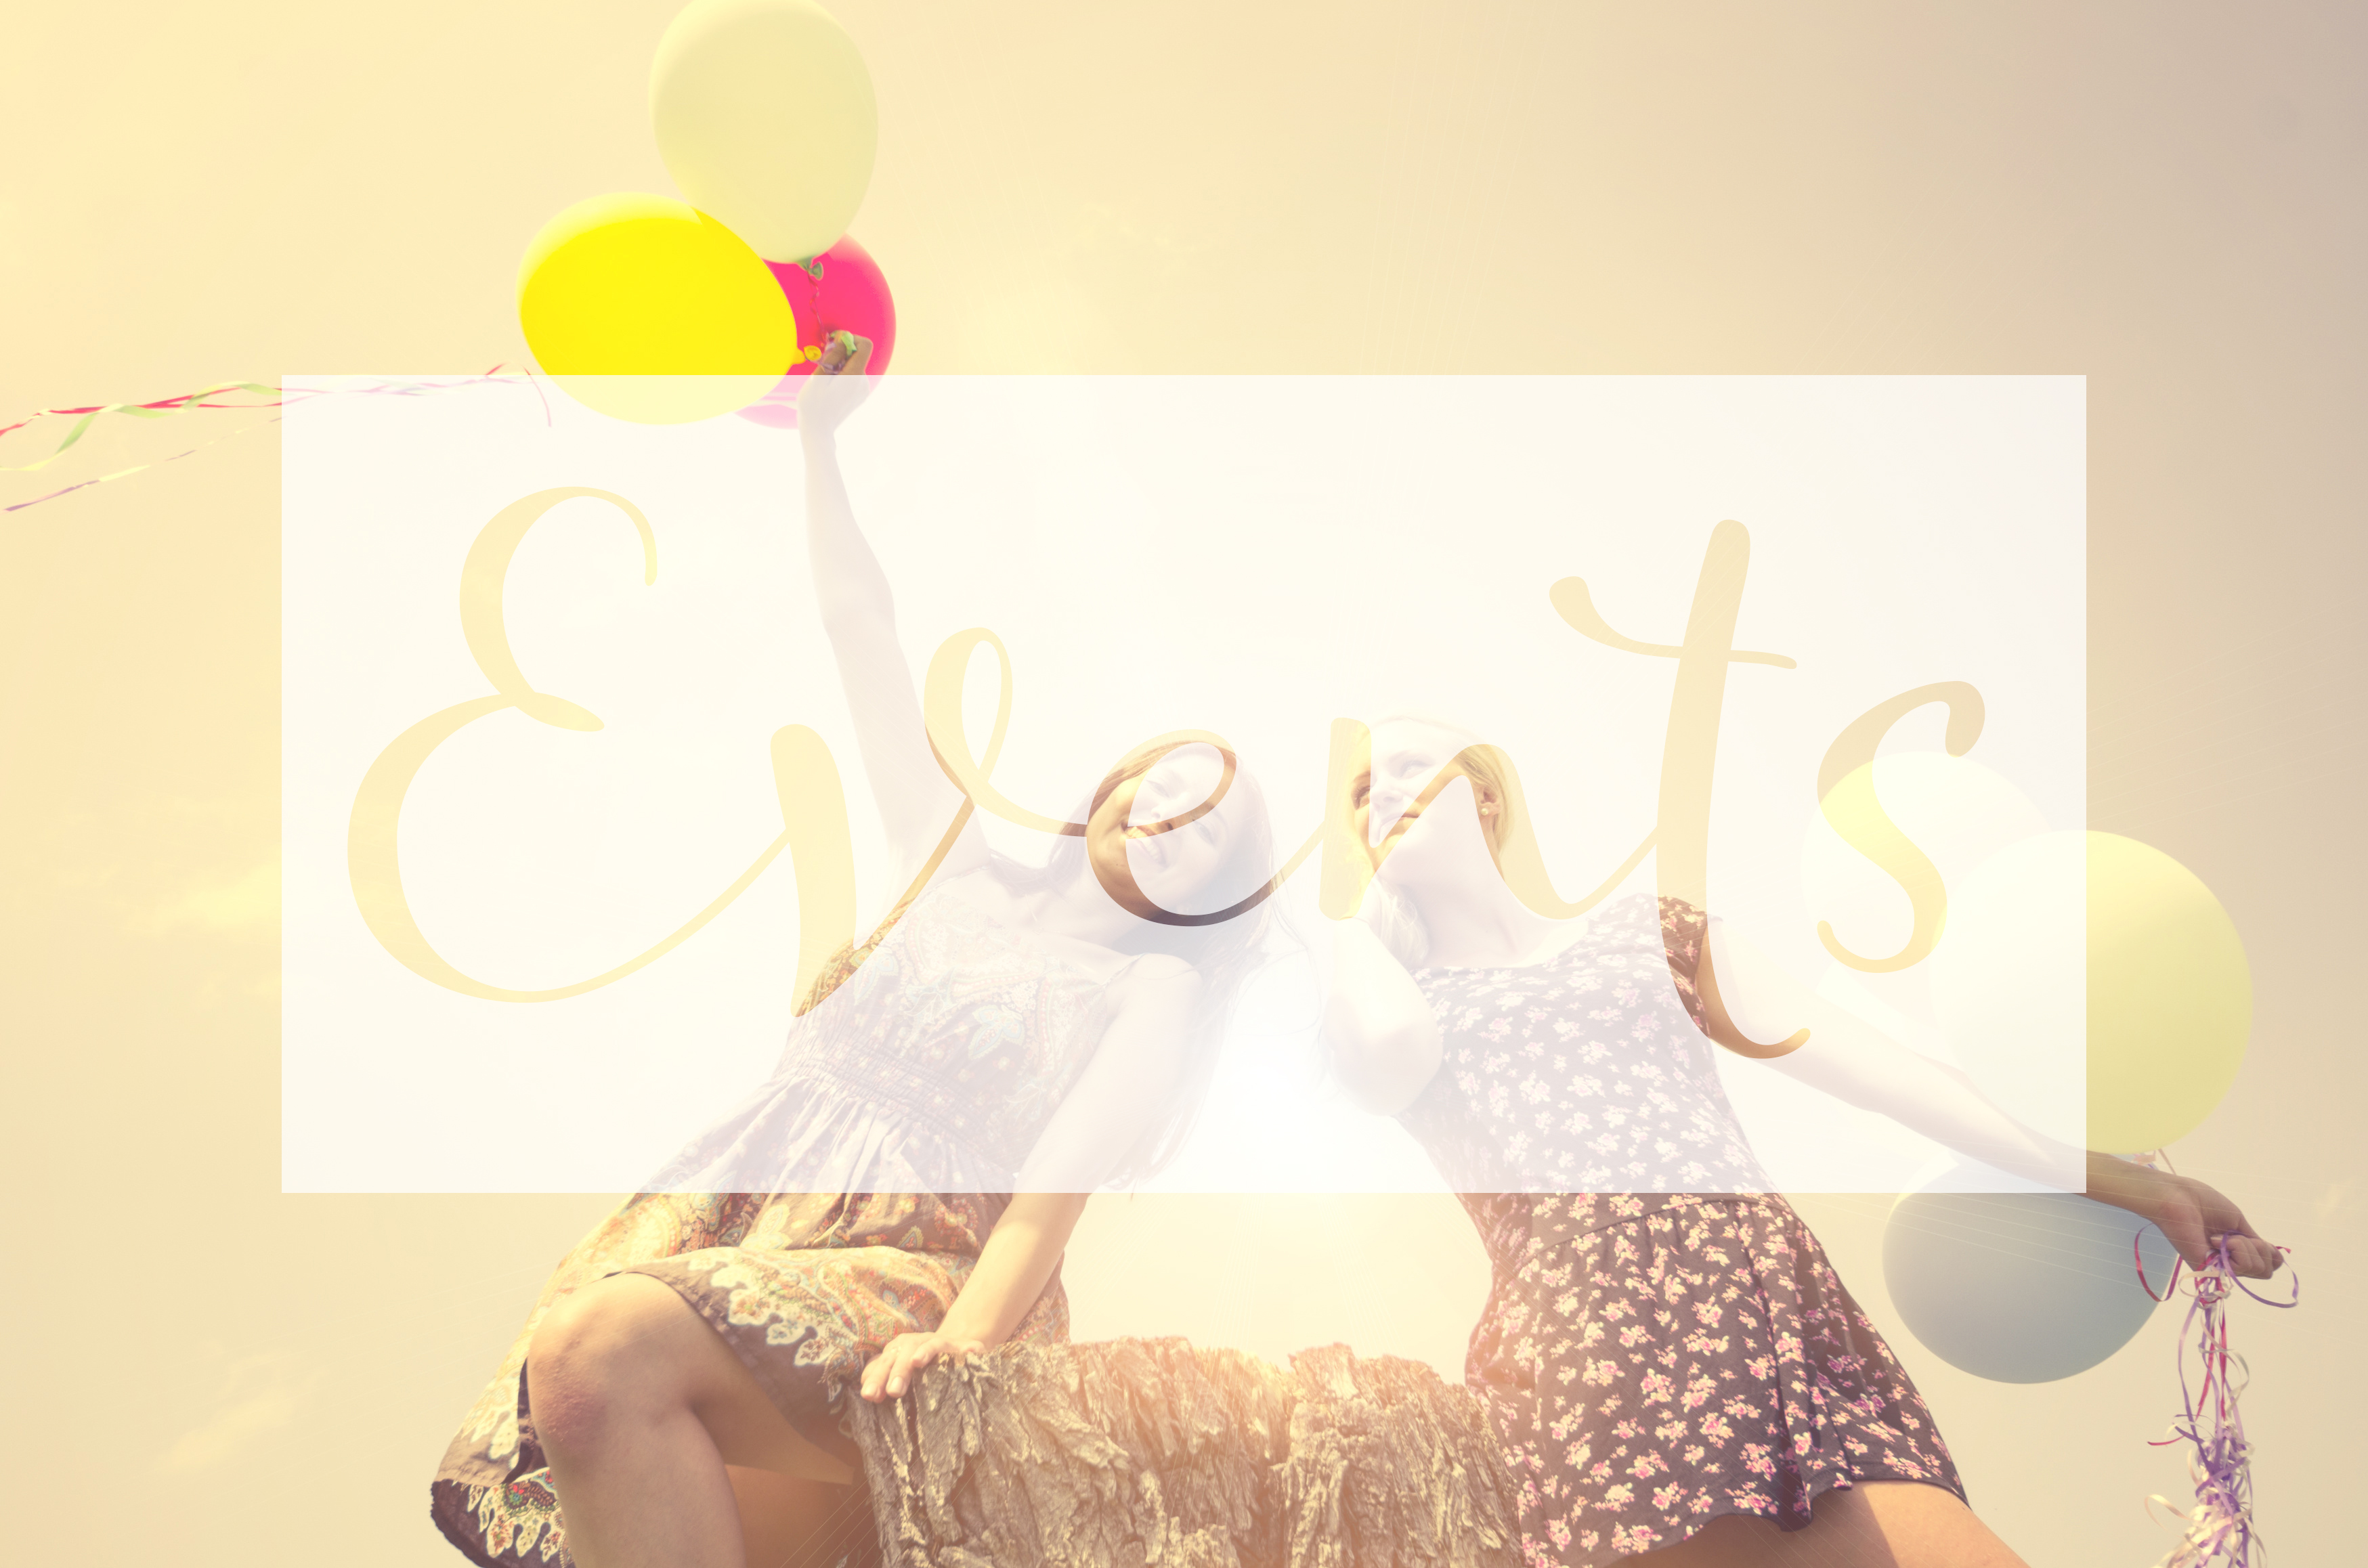 colleen events Upcoming Speaking Gigs & Programs